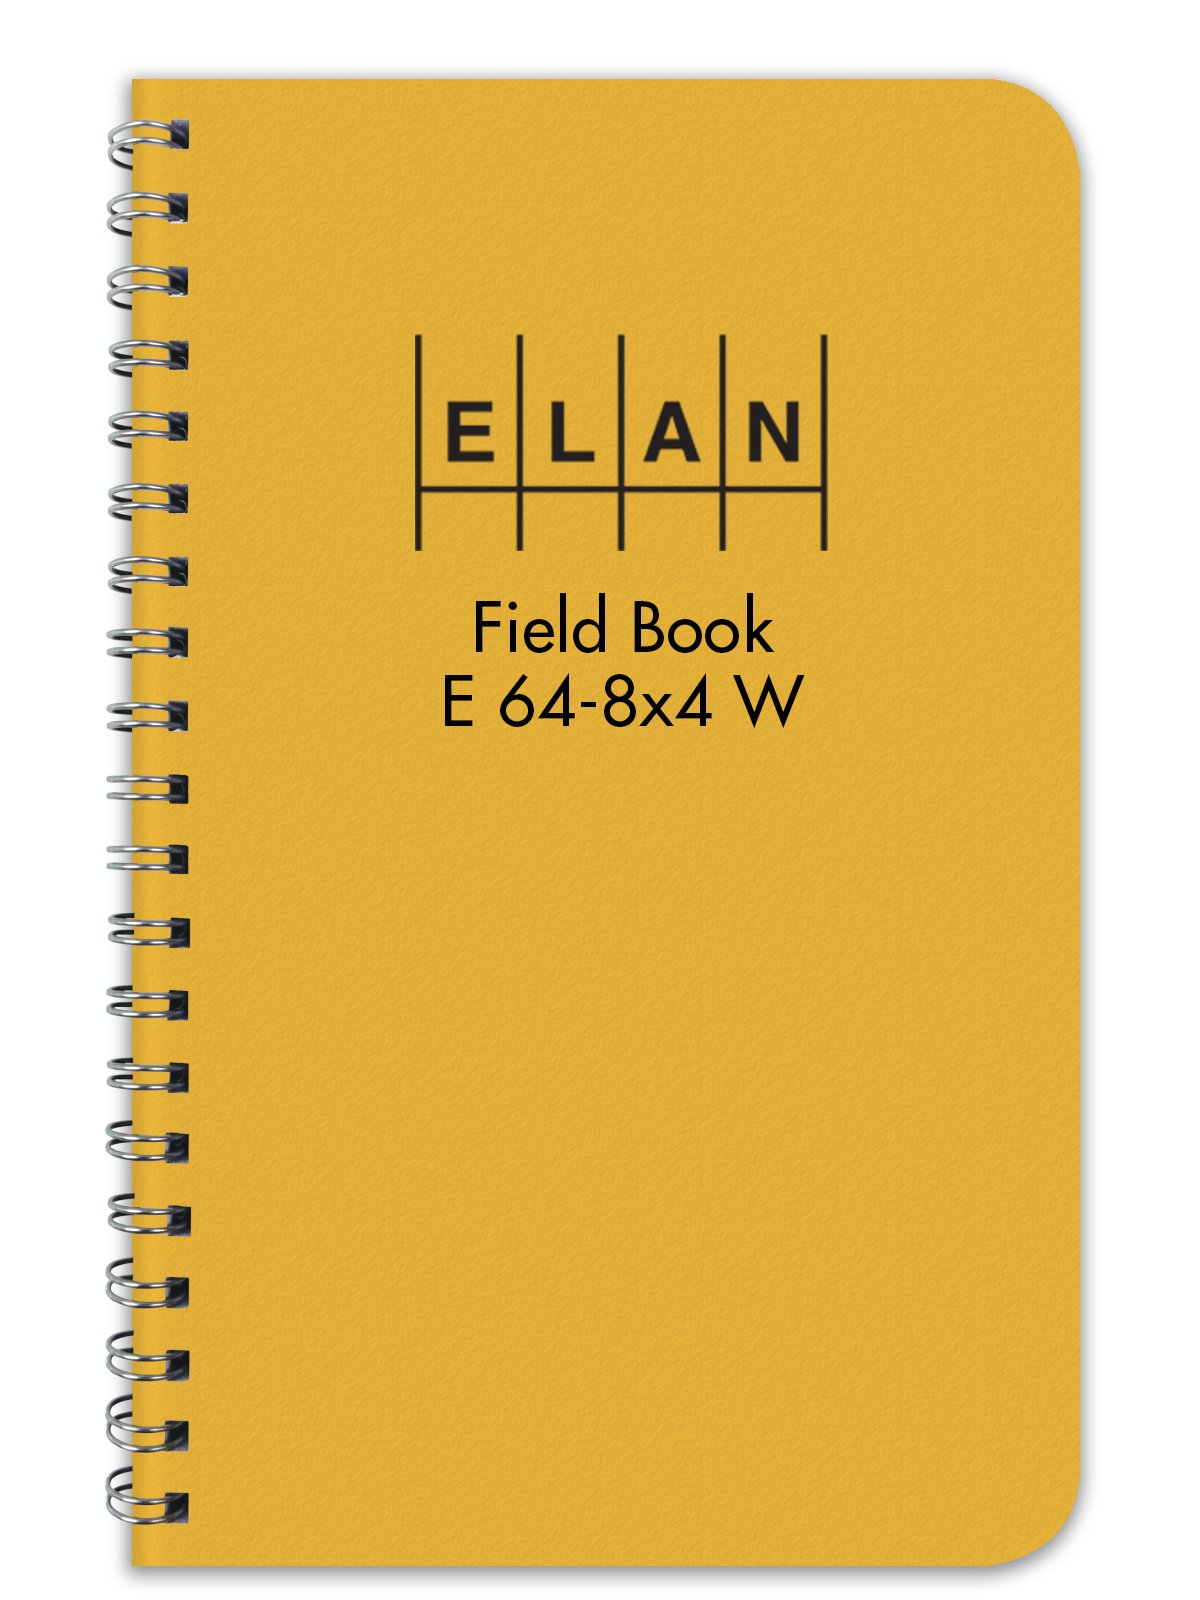 Elan Publishing Company E64-8x4W Wire-O Field Surveying Book 4 ⅞ x 7 ¼ Yellow Stiff Cover (Pack of 12)